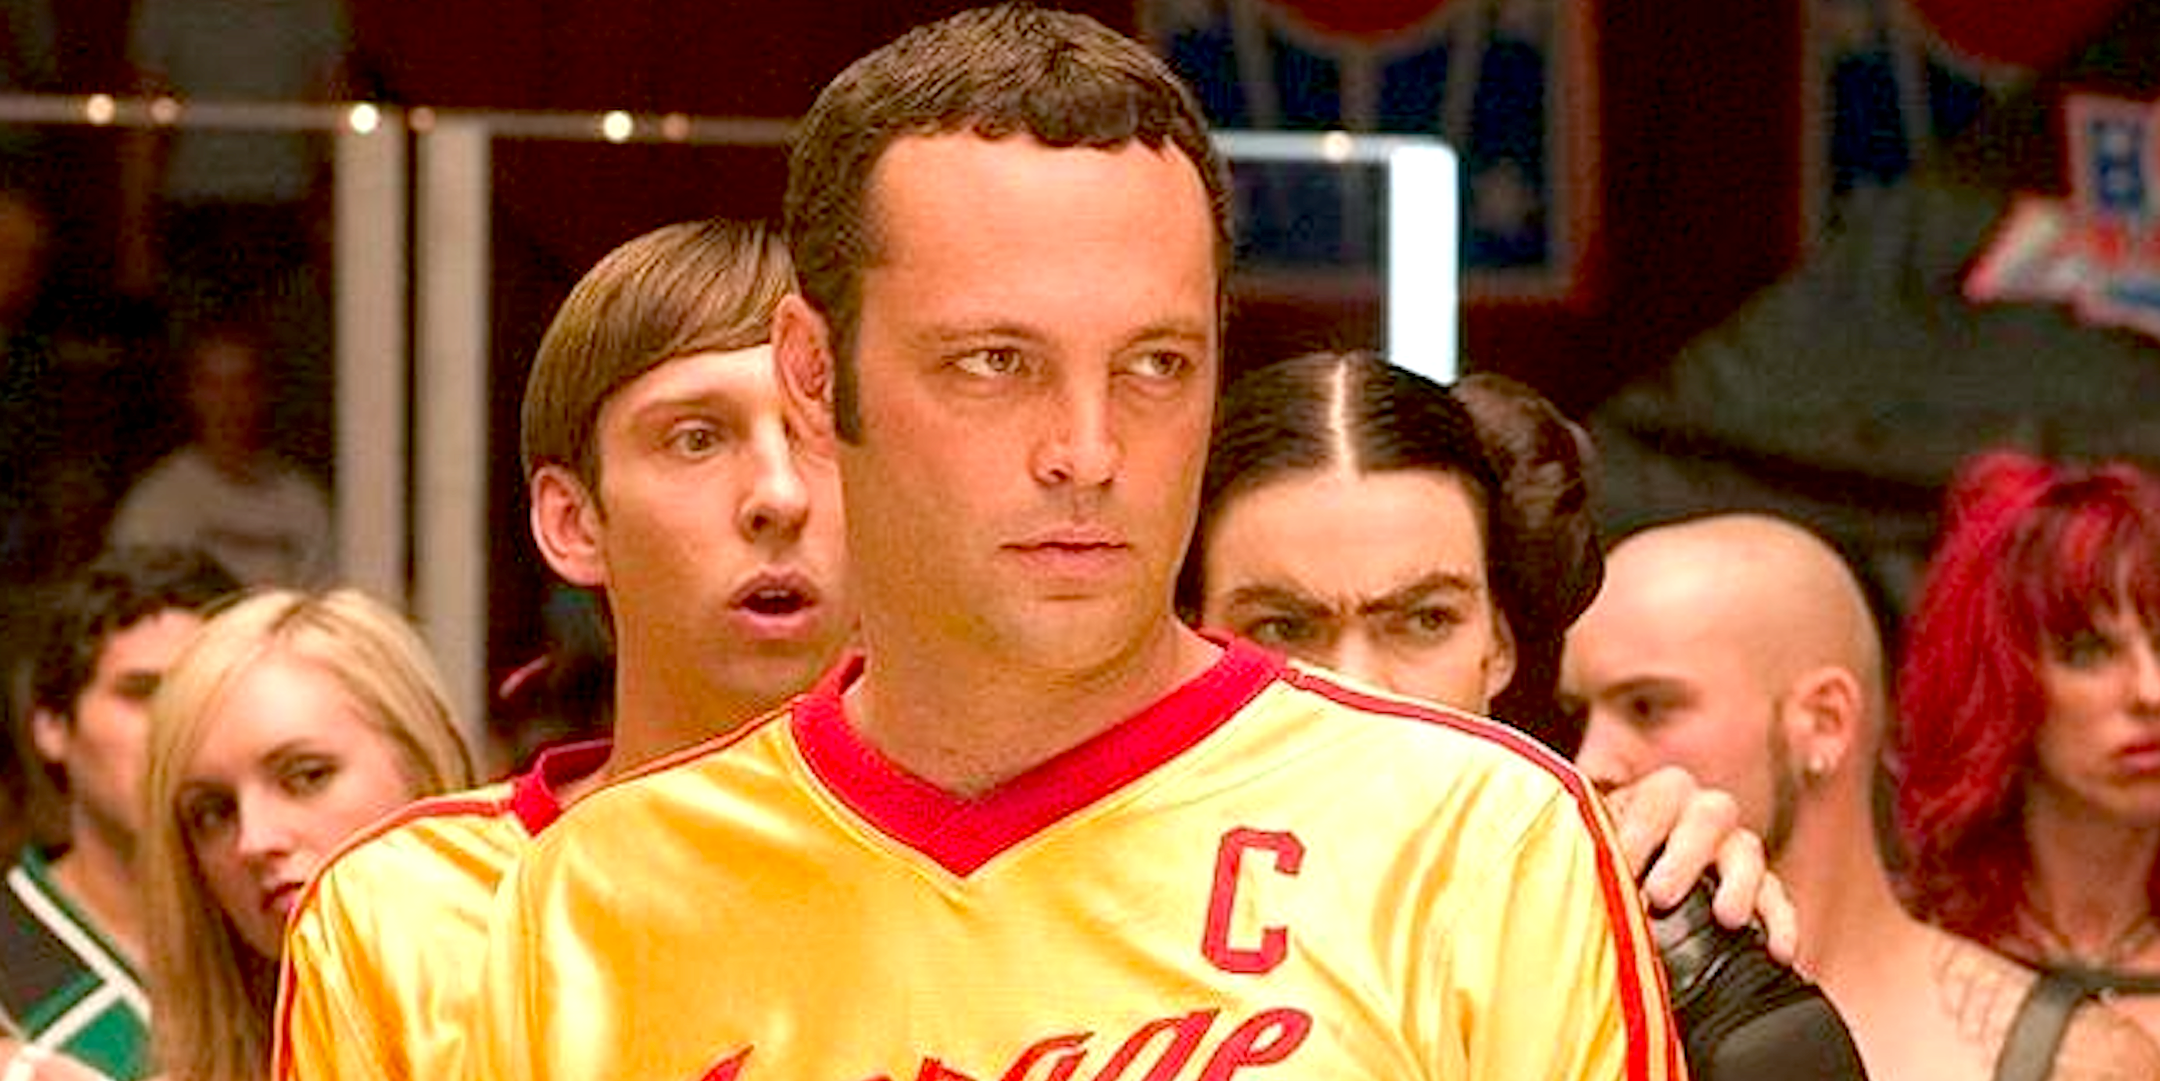 movies, dodgeball, 2004, Vince Vaughn